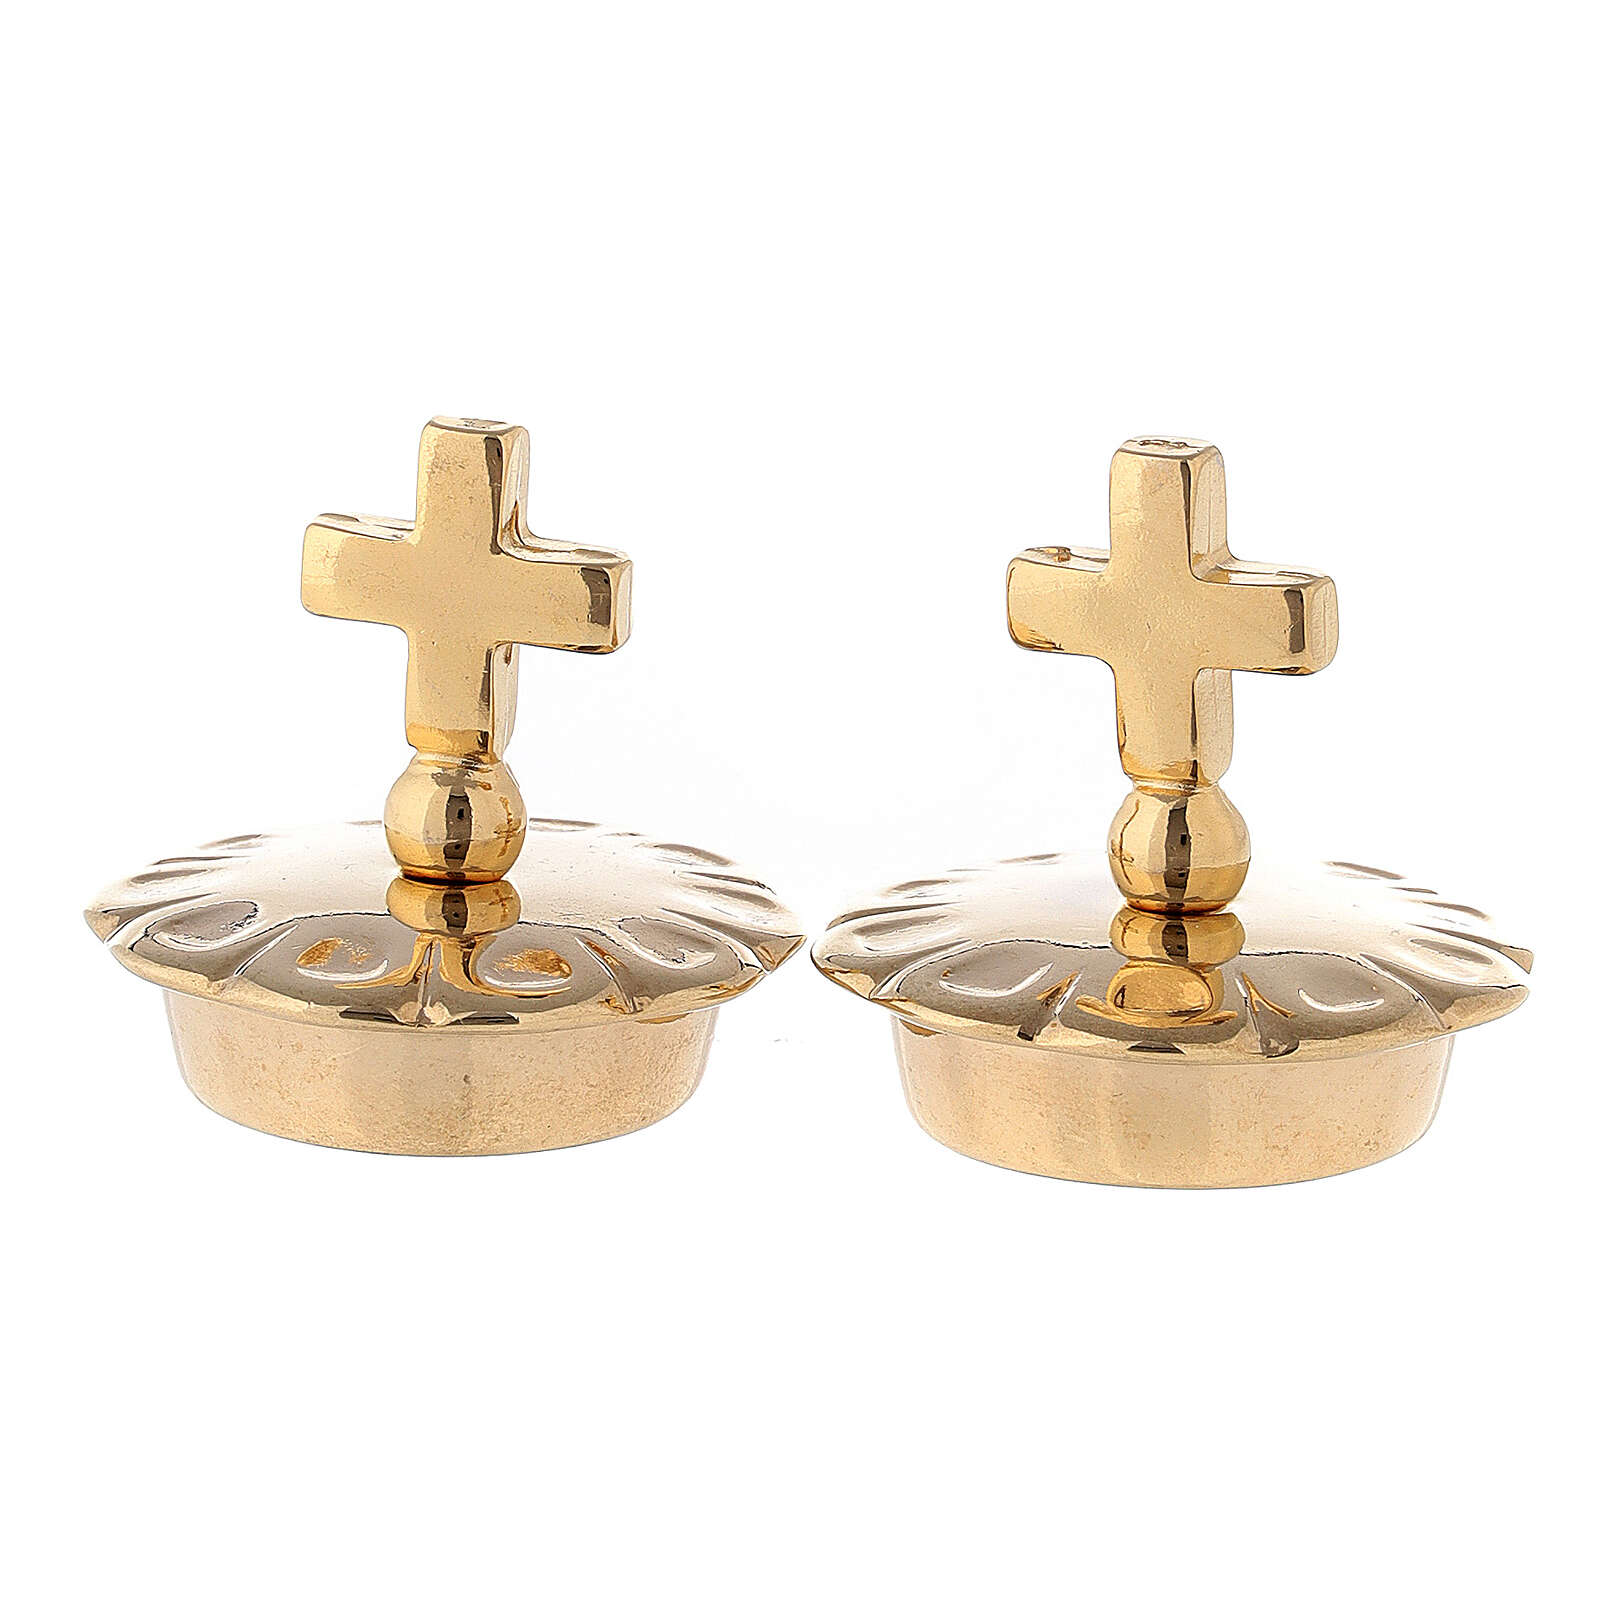 Pair of 24K brass simple cross caps for Palermo-Ravenna-Parma pitchers 4